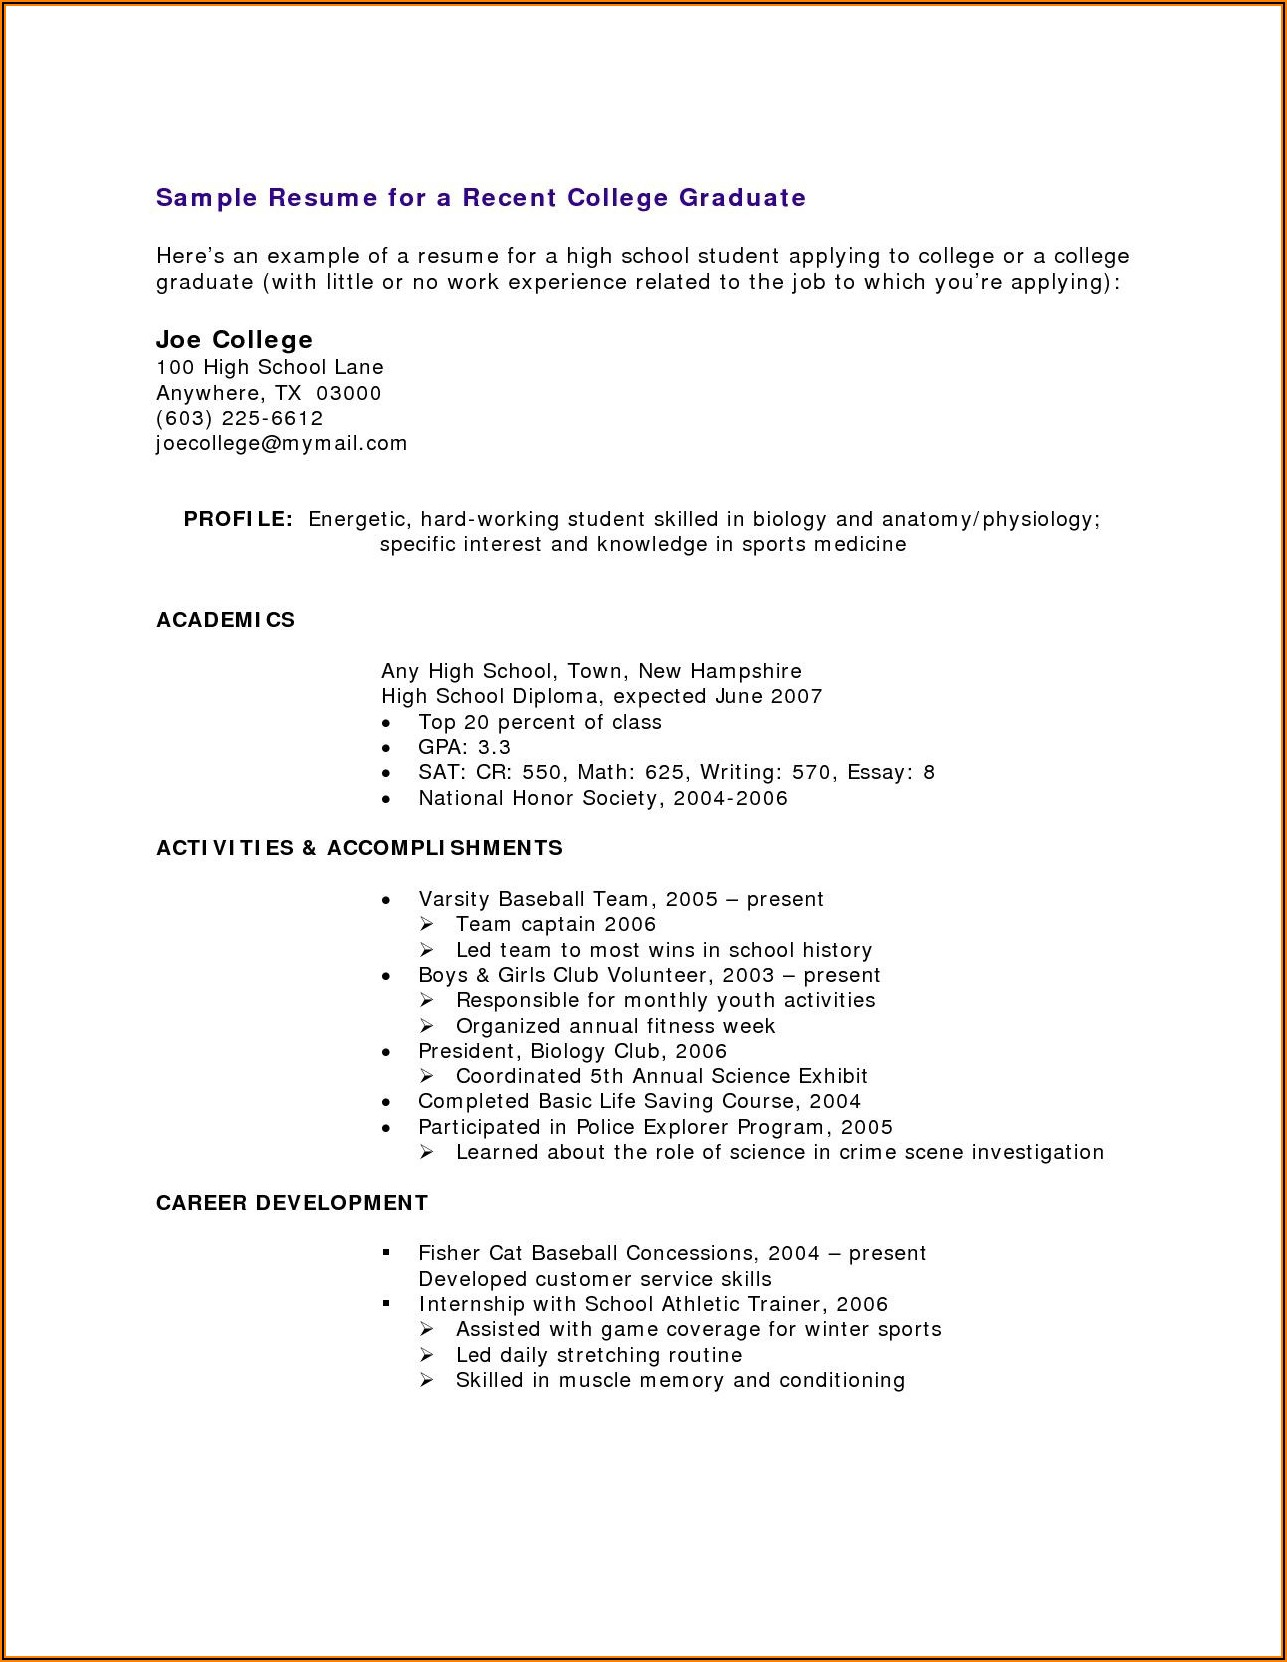 Free Resume Templates For High School Students With No Experience